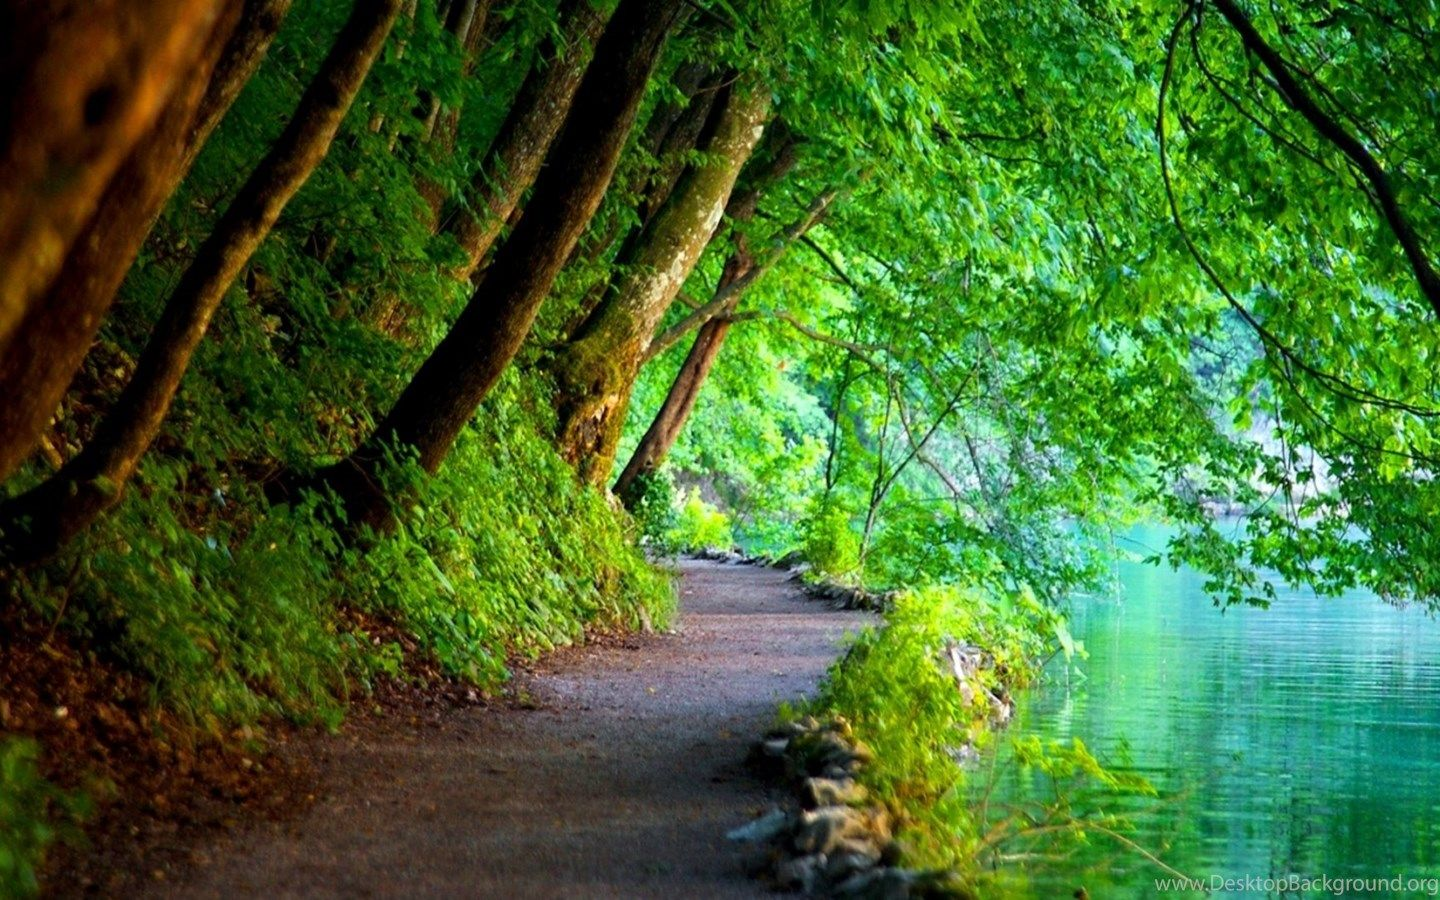 High Resolution Nature Backgrounds In 2020 Plitvice Lakes Nature Pictures Plitvice Lakes National Park